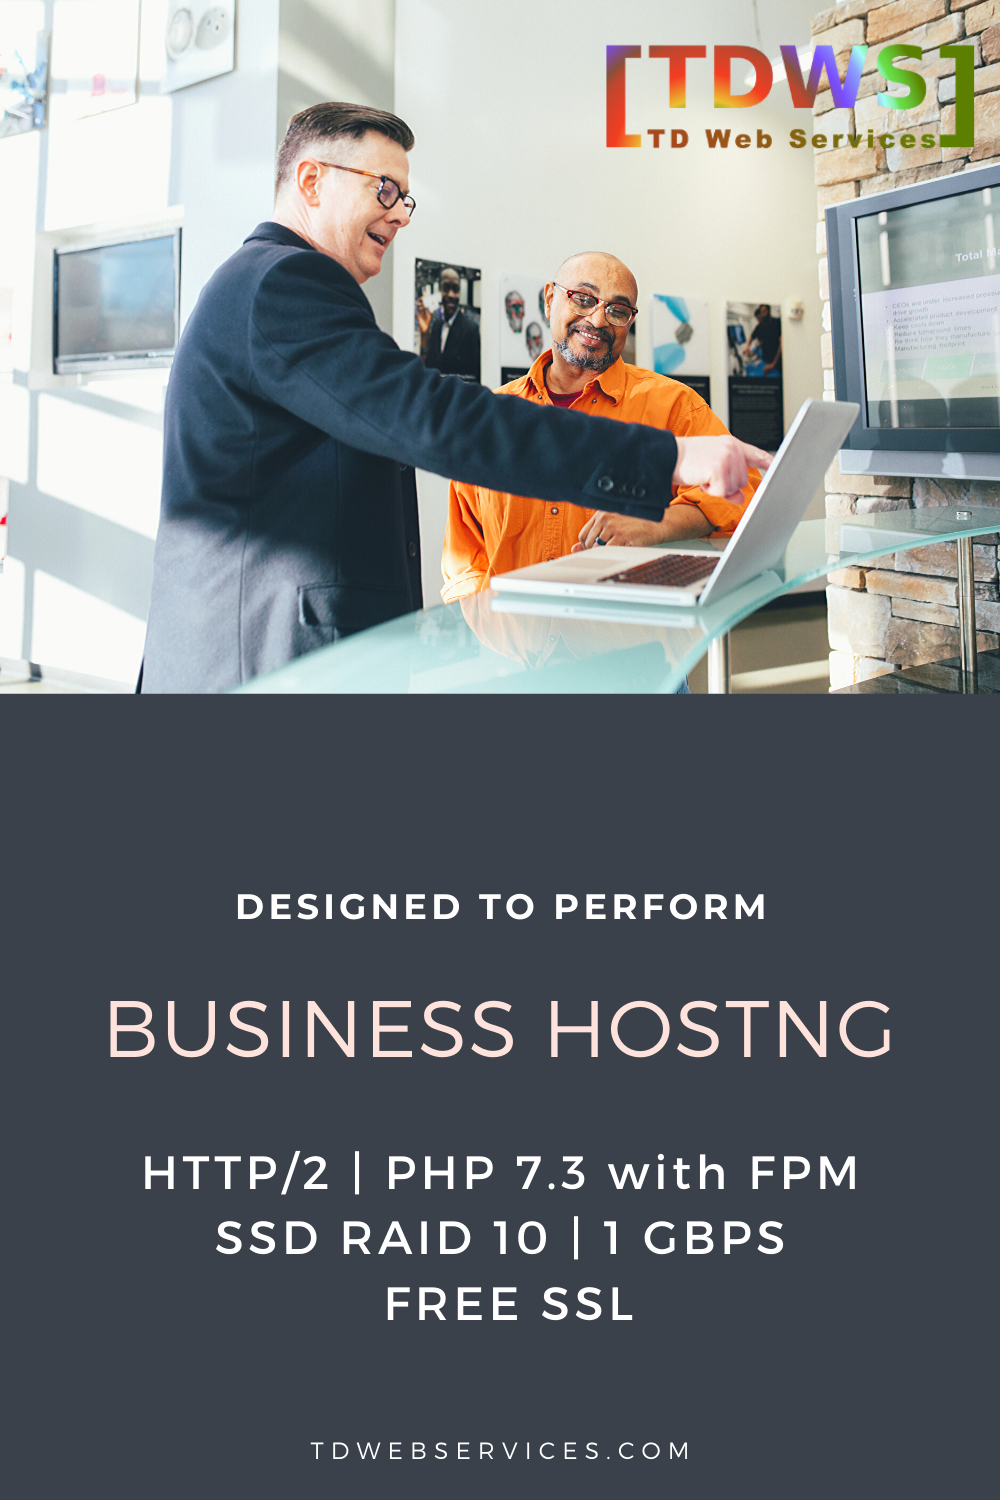 Pin on TDWS Business Hosting